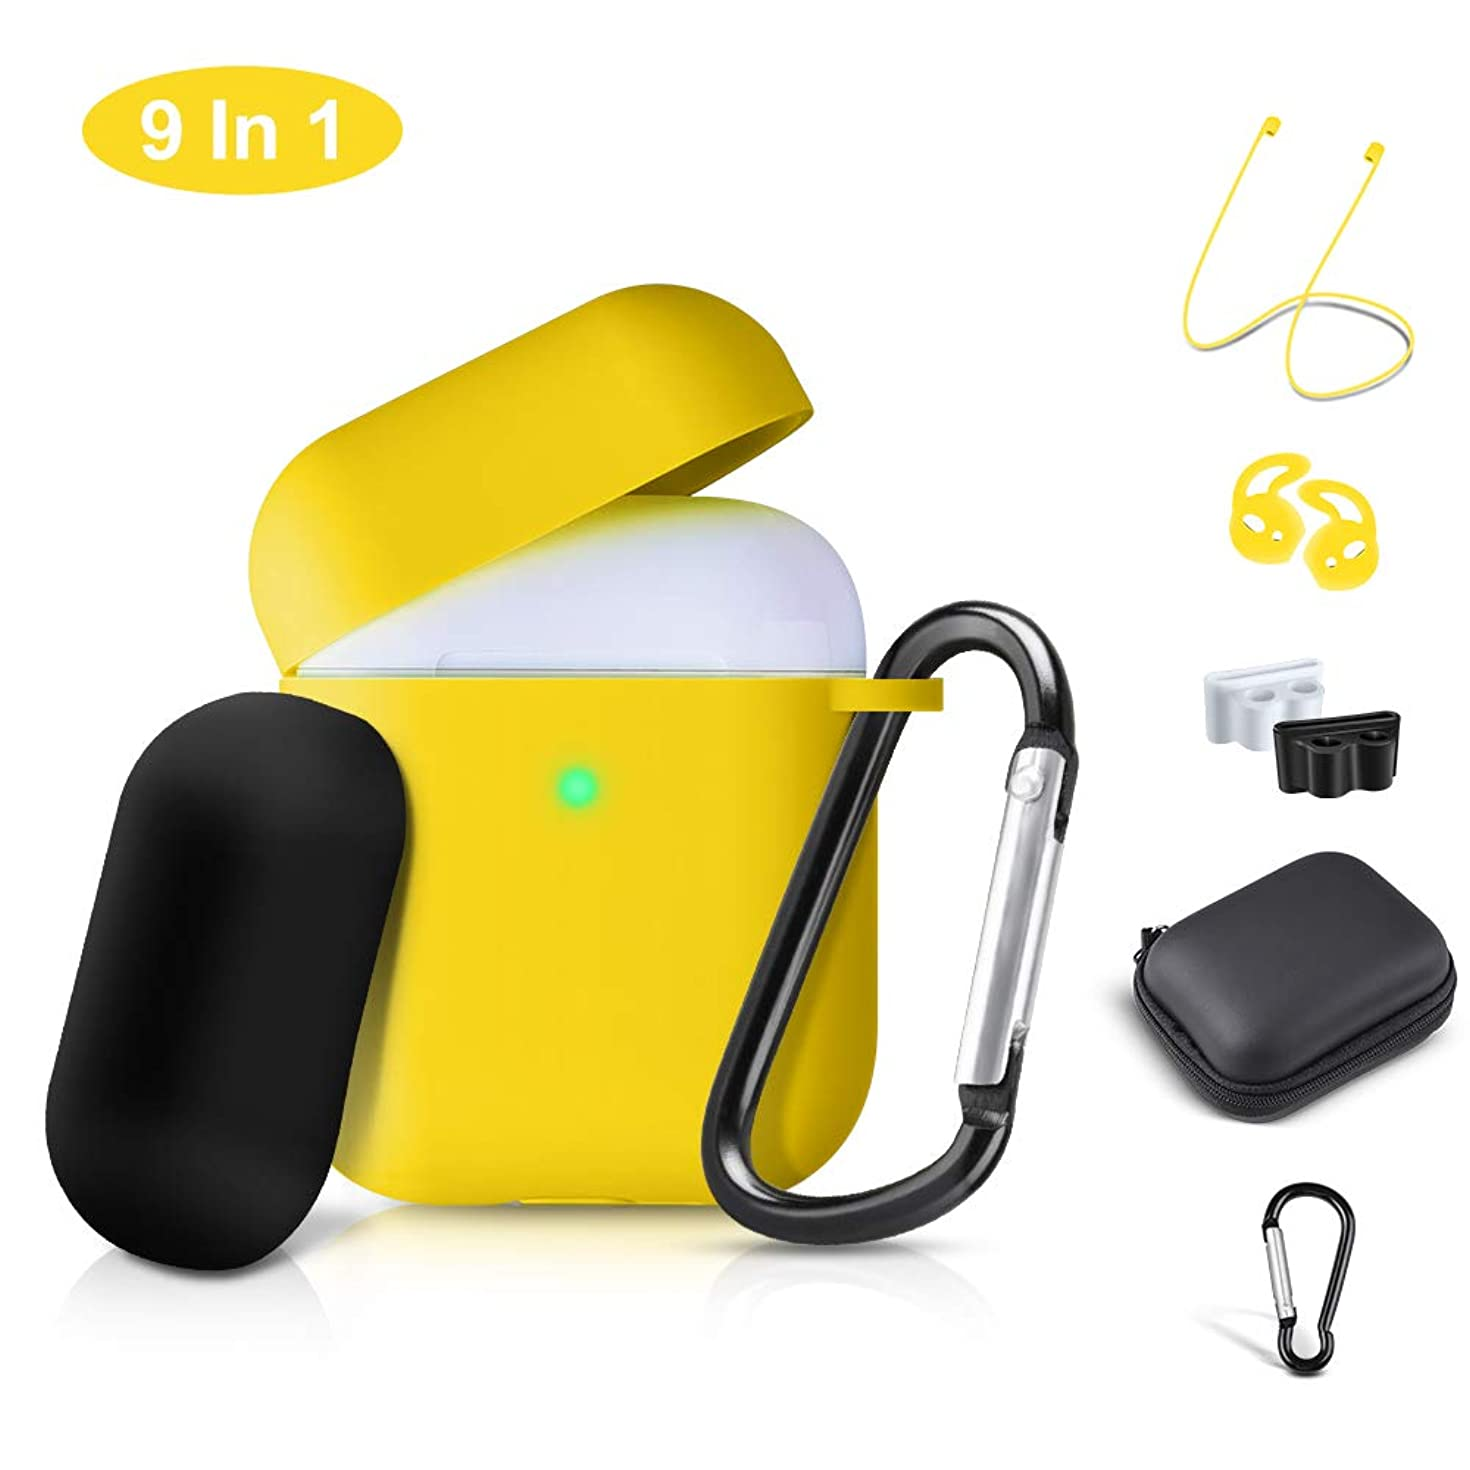 Airpods Case Cover, 2019 Airpod 2 Silicone Case Full Protective Cover Skin 9 in 1 Airpods Accessories for Apple Airpods 2 & 1 Wireless Charging Case, RTAKO Airpod Case Yellow (Front LED Visible)